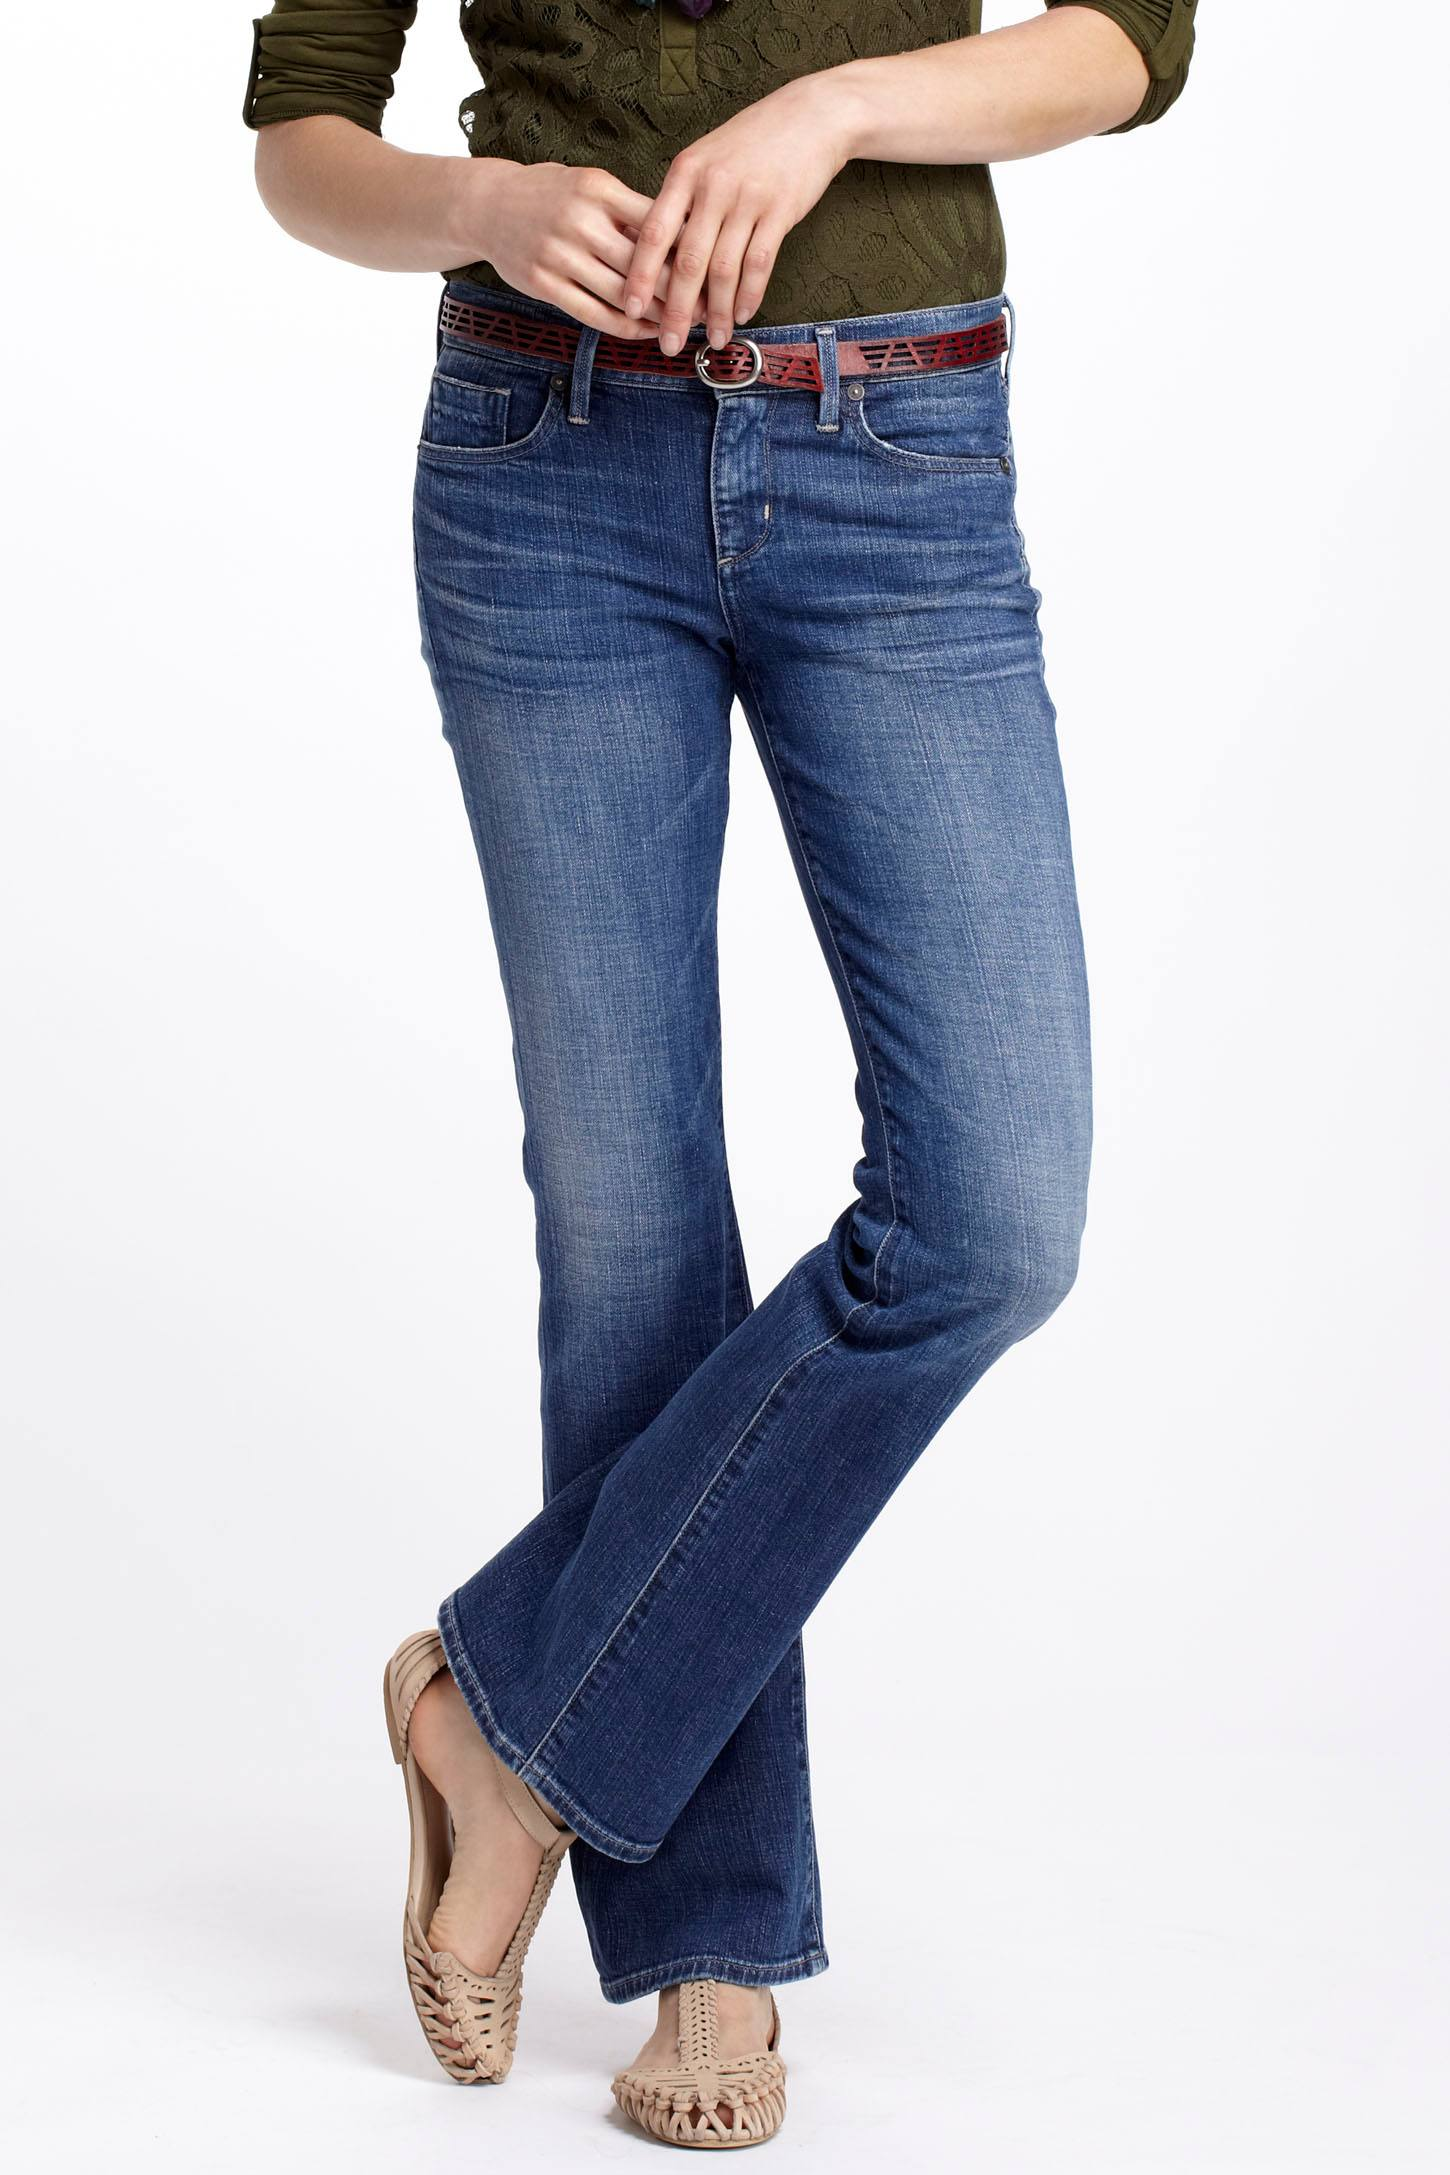 Citizens Of Humanity Dita petite Felt Jeans